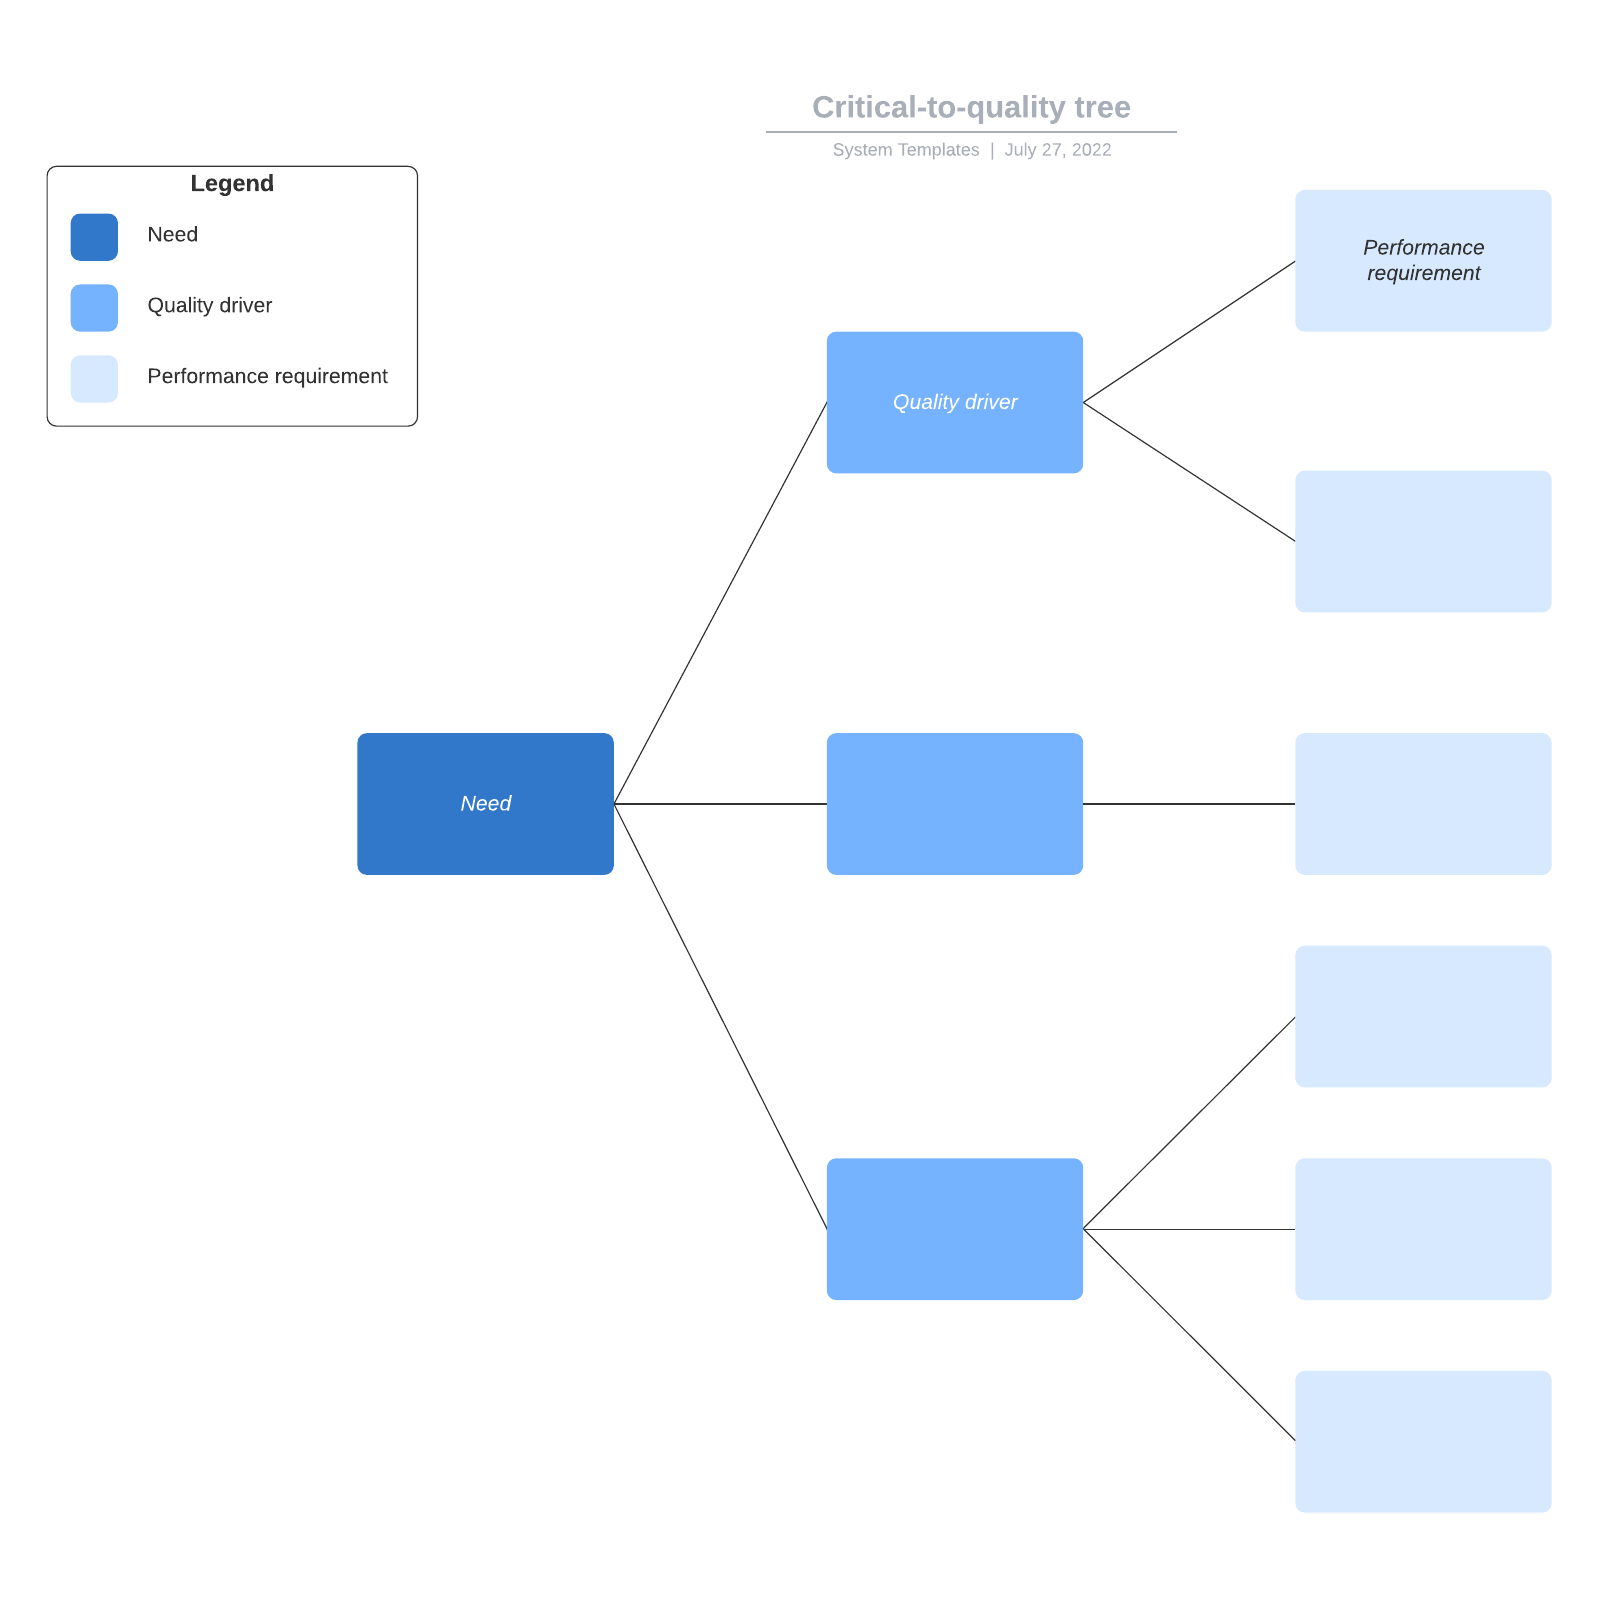 Critical-to-quality tree